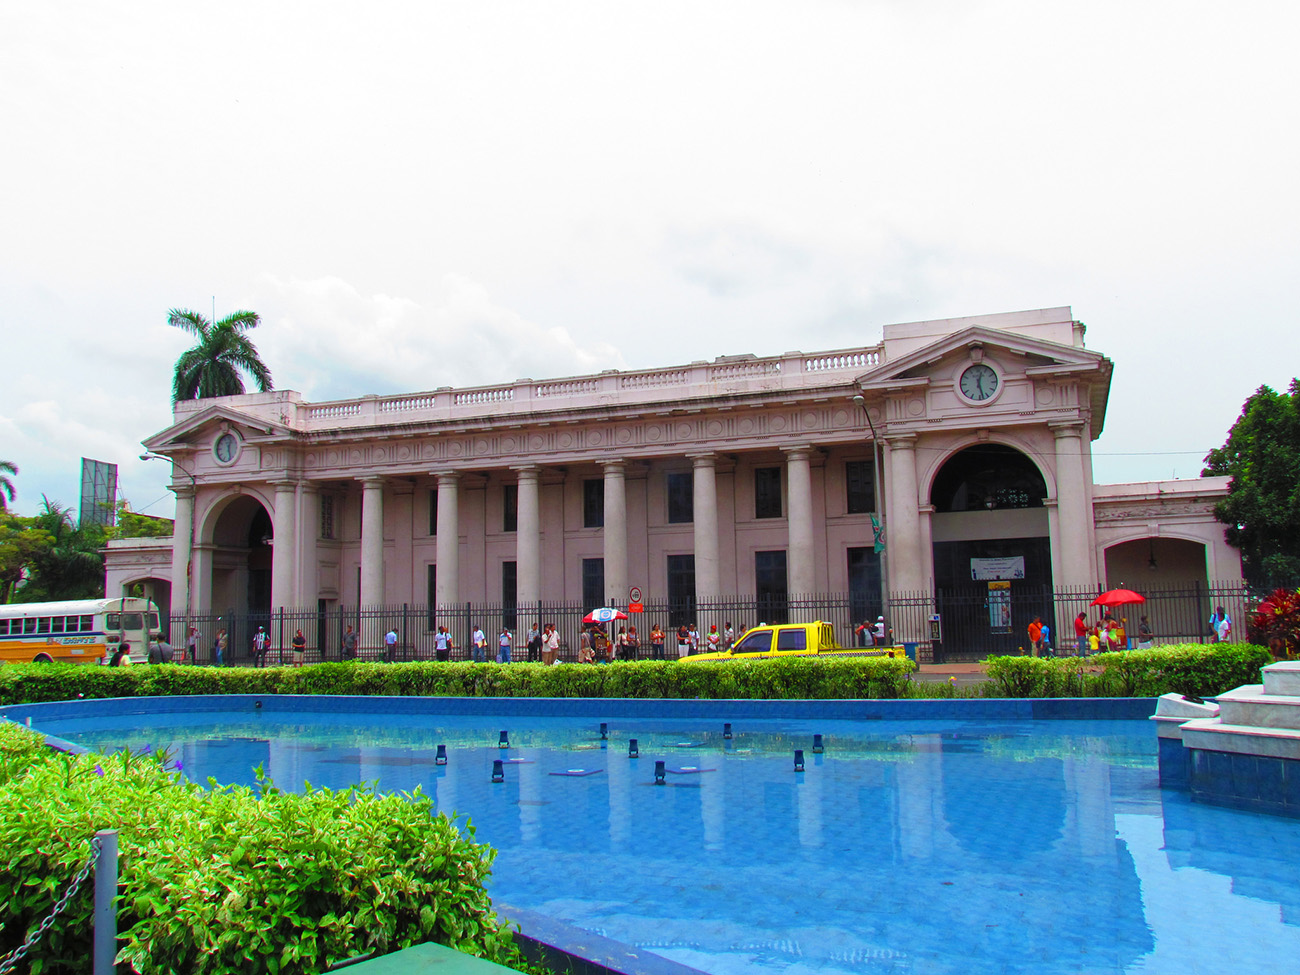 Large neo-classical style white building in Panama. The building is in front of a fountain that is turned off in the photo.